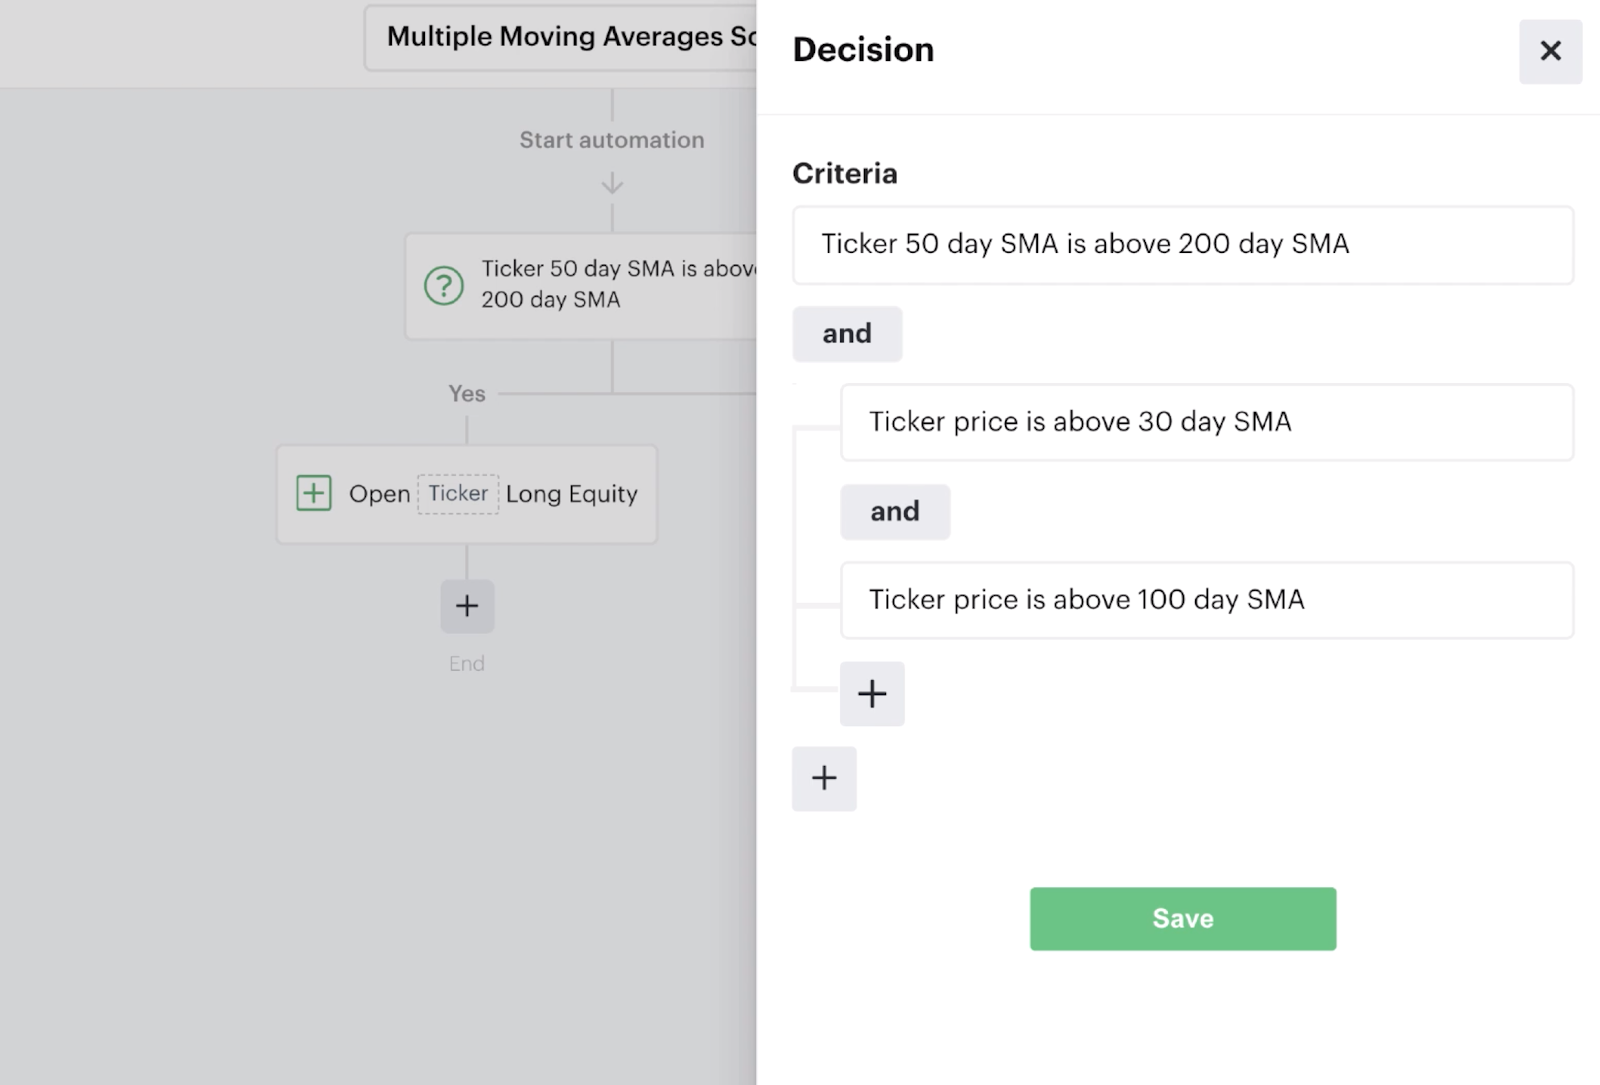 Nested decision recipe with multiple moving average criteria